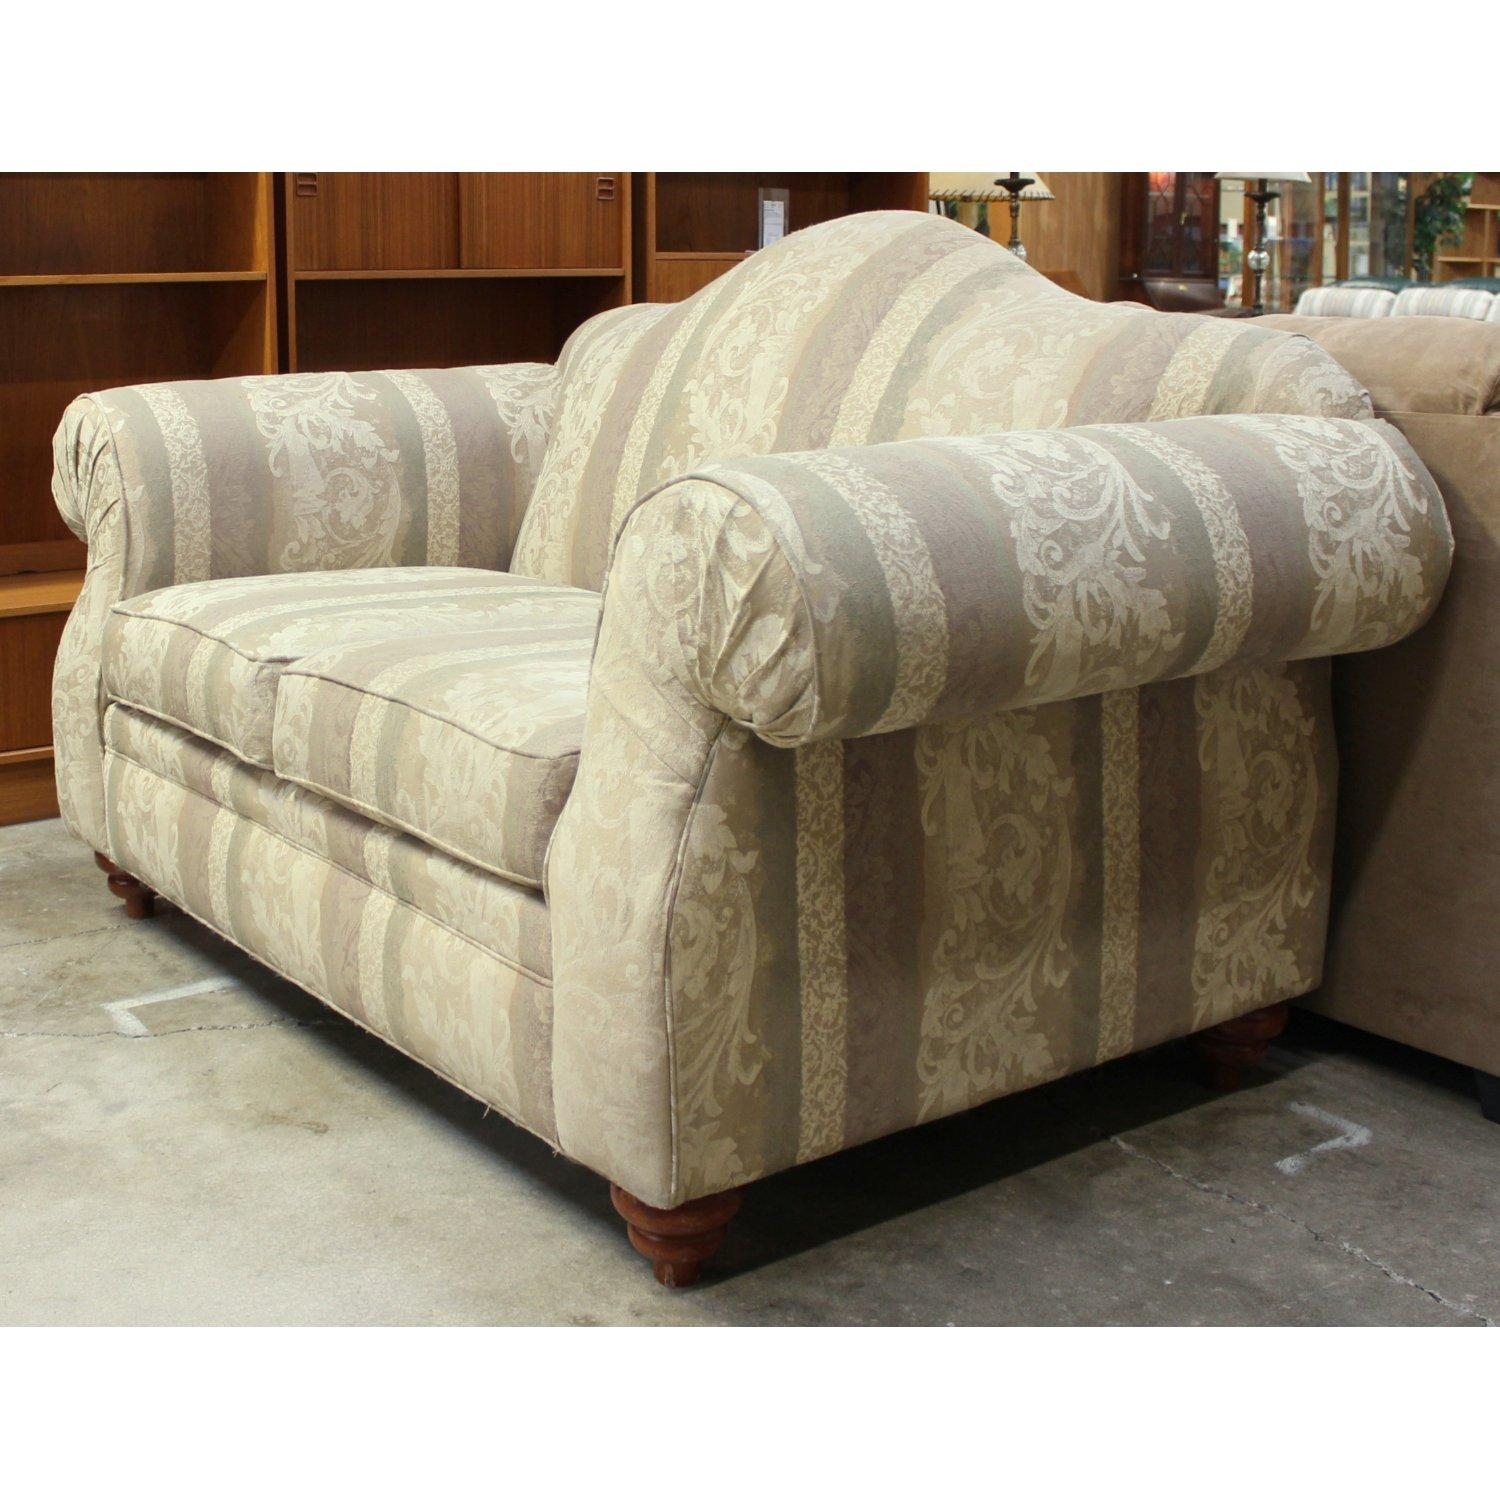 Alan White Camelback Loveseat | Upscale Consignment Inside Alan White Sofas (Image 3 of 20)